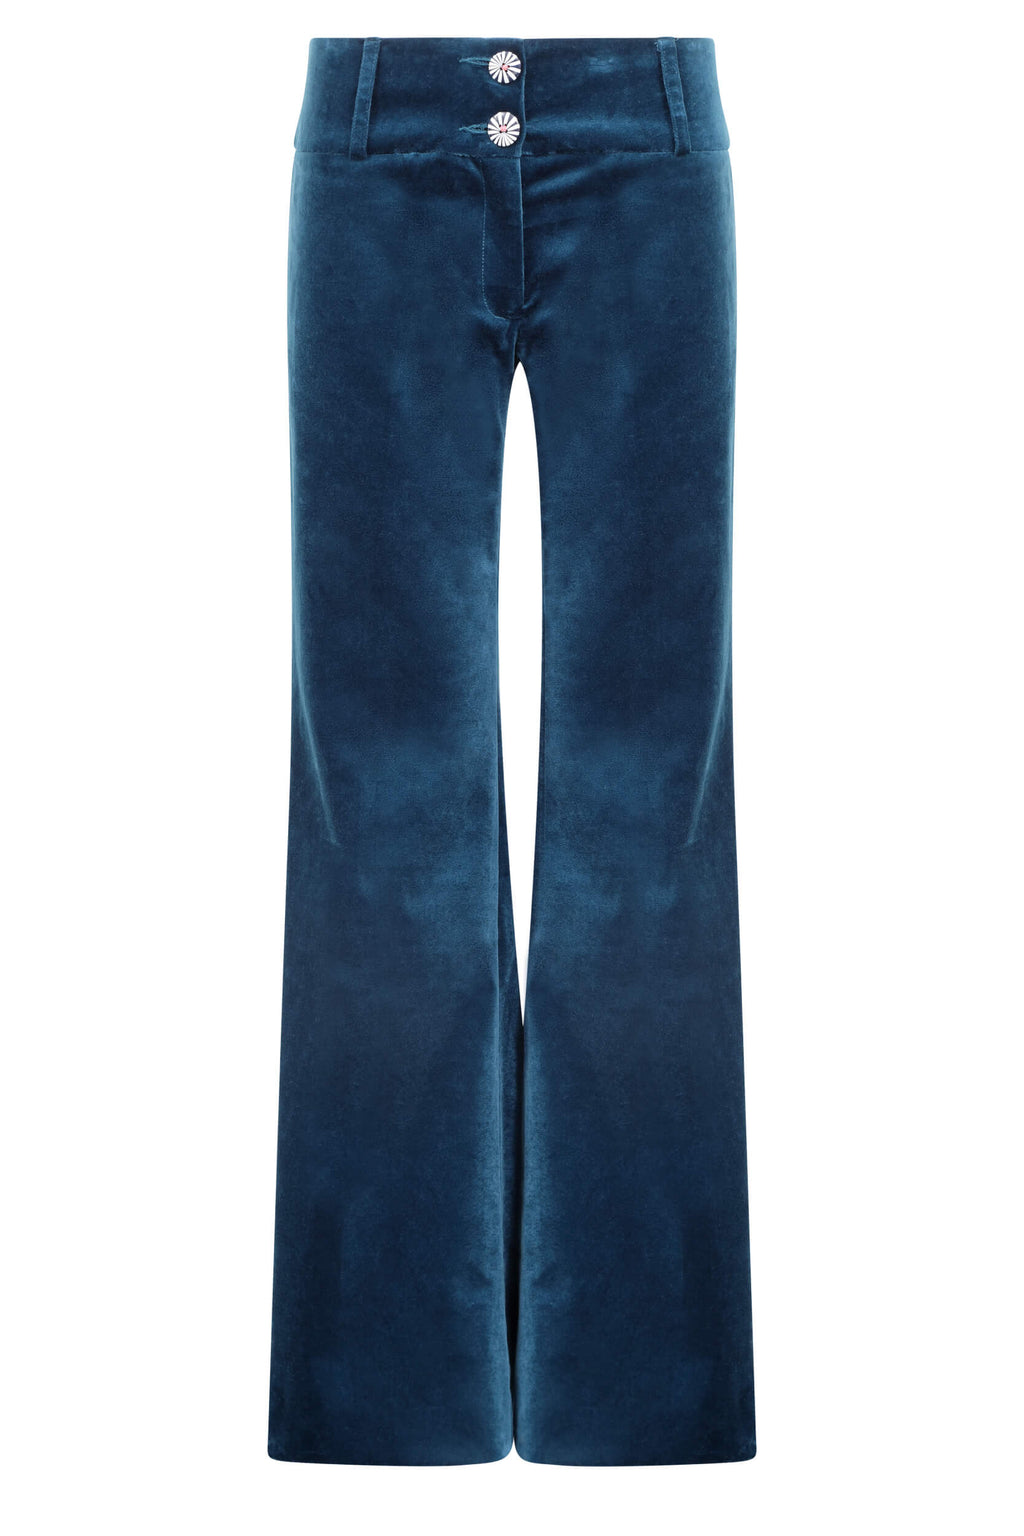 teal-velvet-trouser-suit-womens